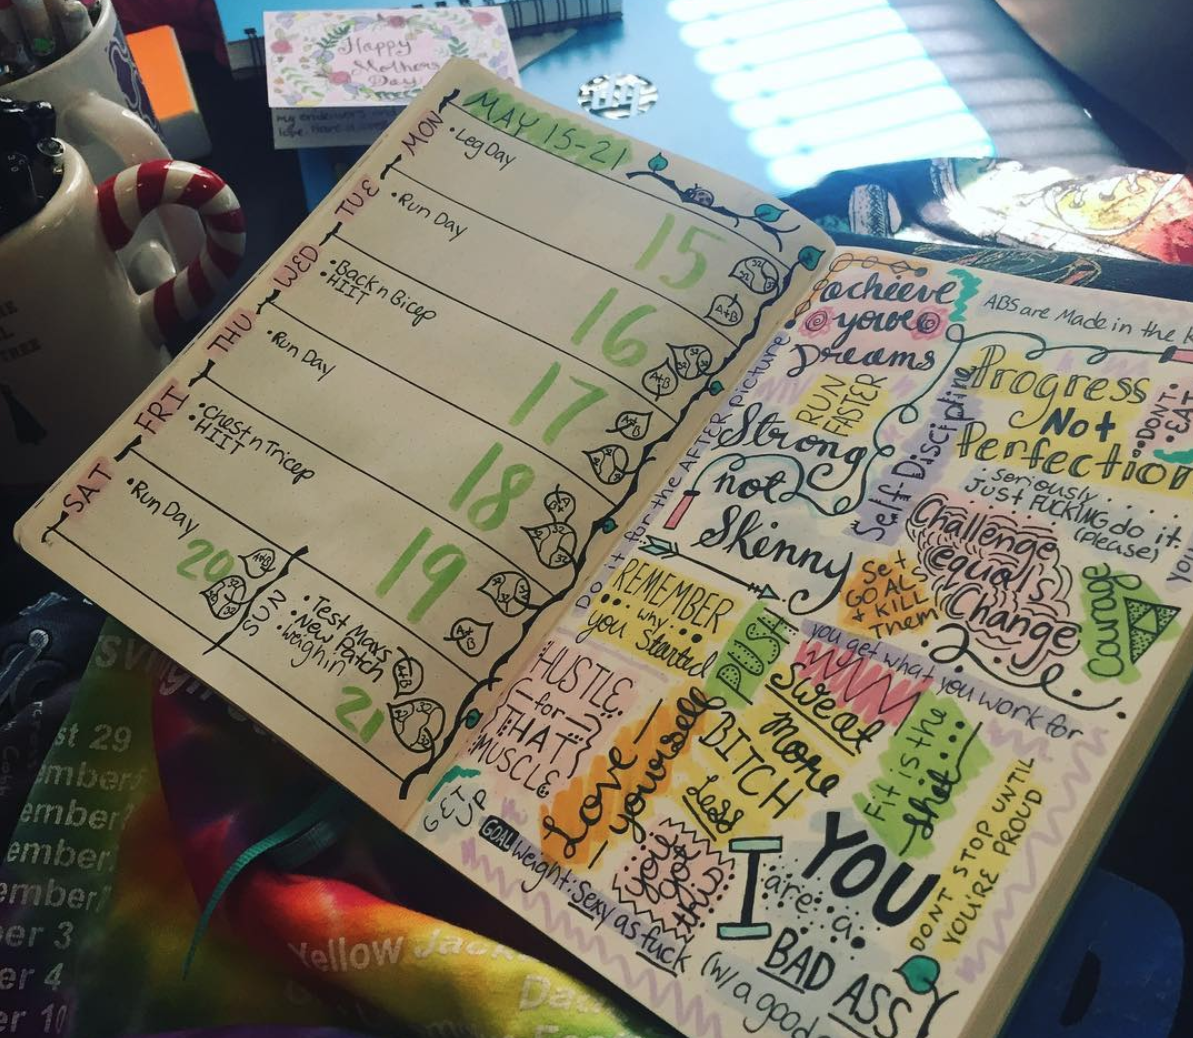 Image from Emaahlei_bujo